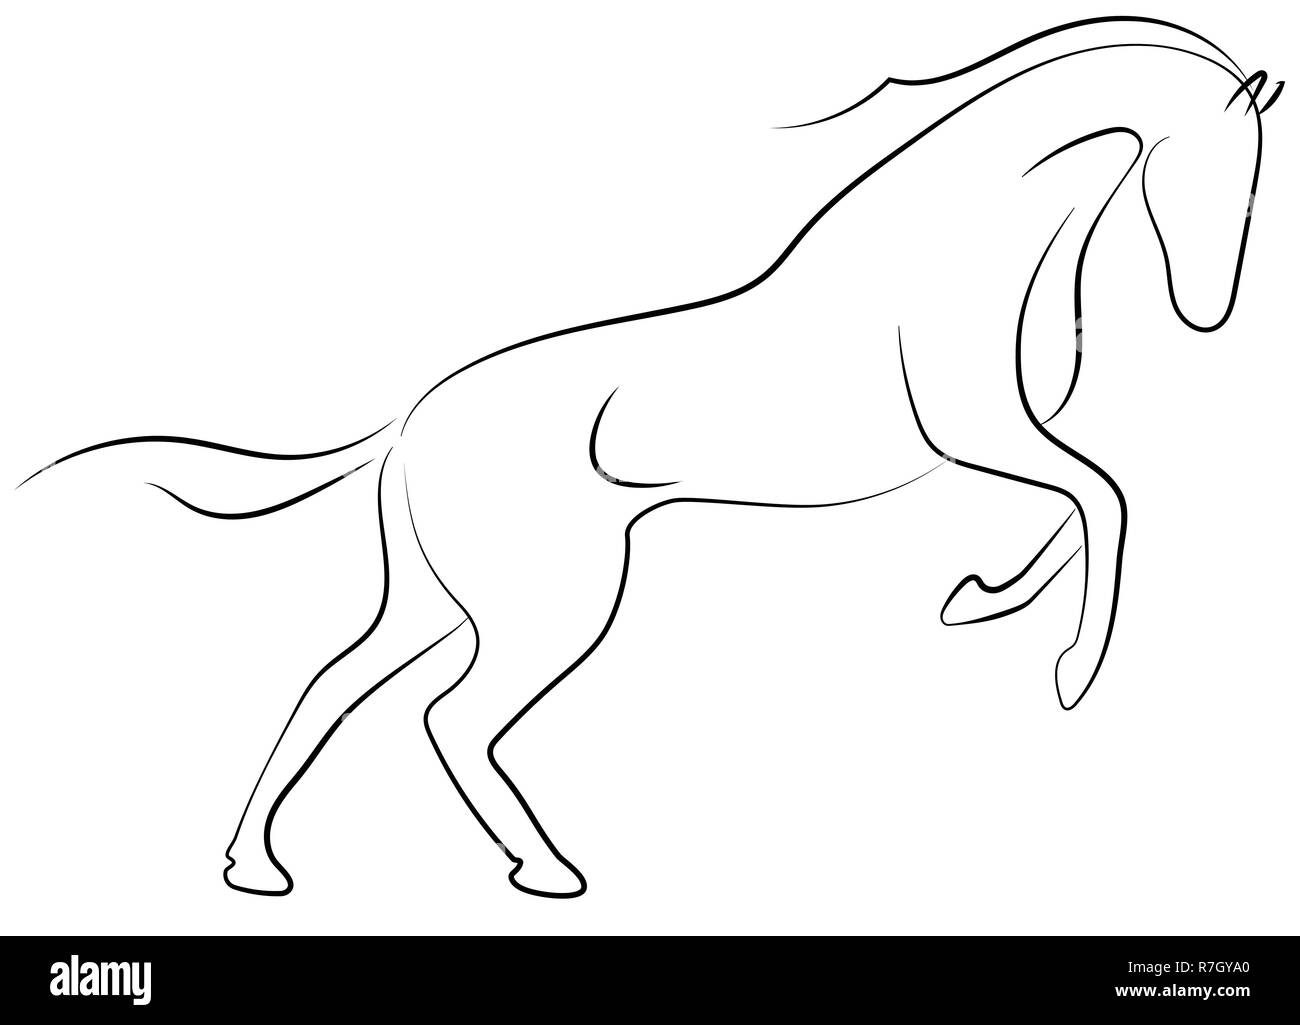 Horse Sketch Black And White Stock Photos Images Alamy